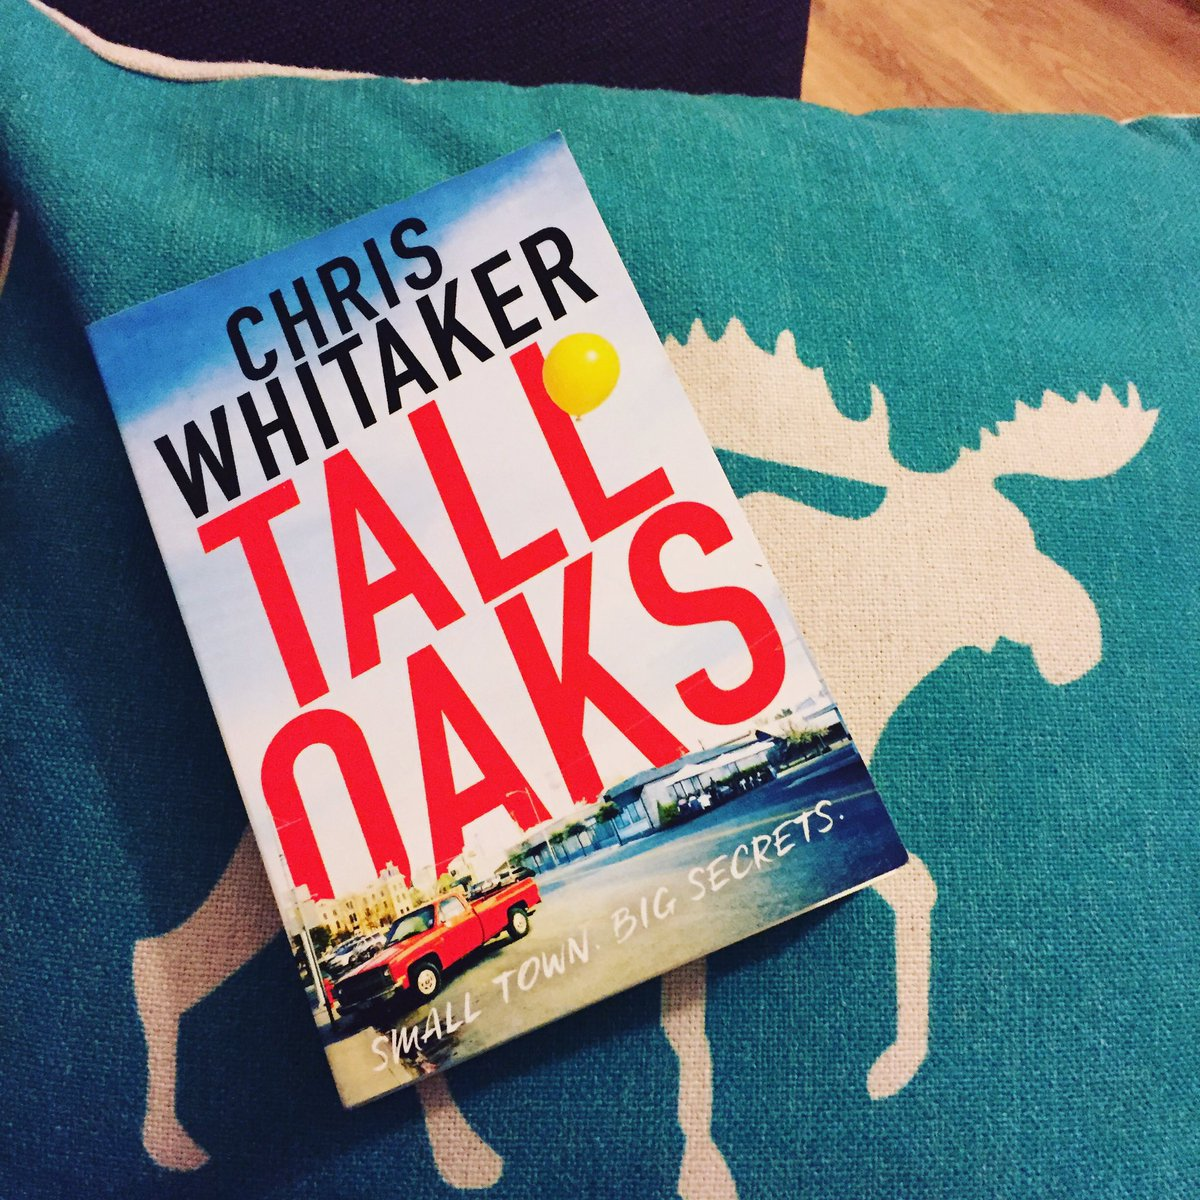 This weeks read is Tall Oaks by Chris Whitaker #books https://t.co/2HJWPoRezc